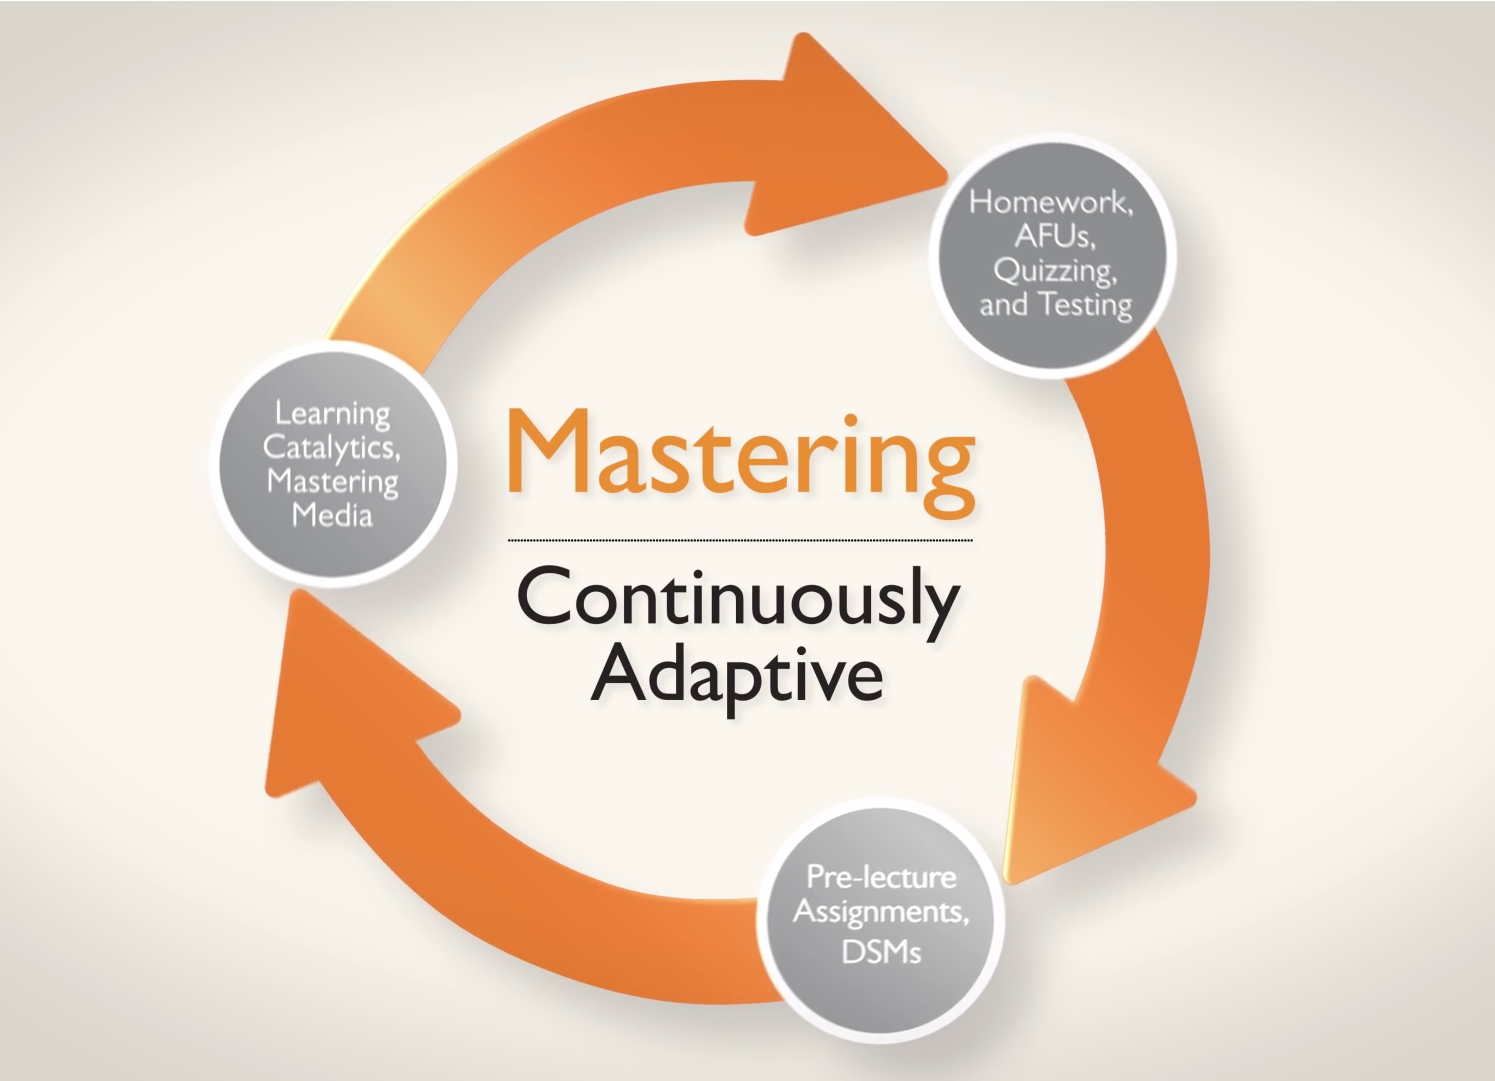 Mastering® - Continuously Adaptive Cycle